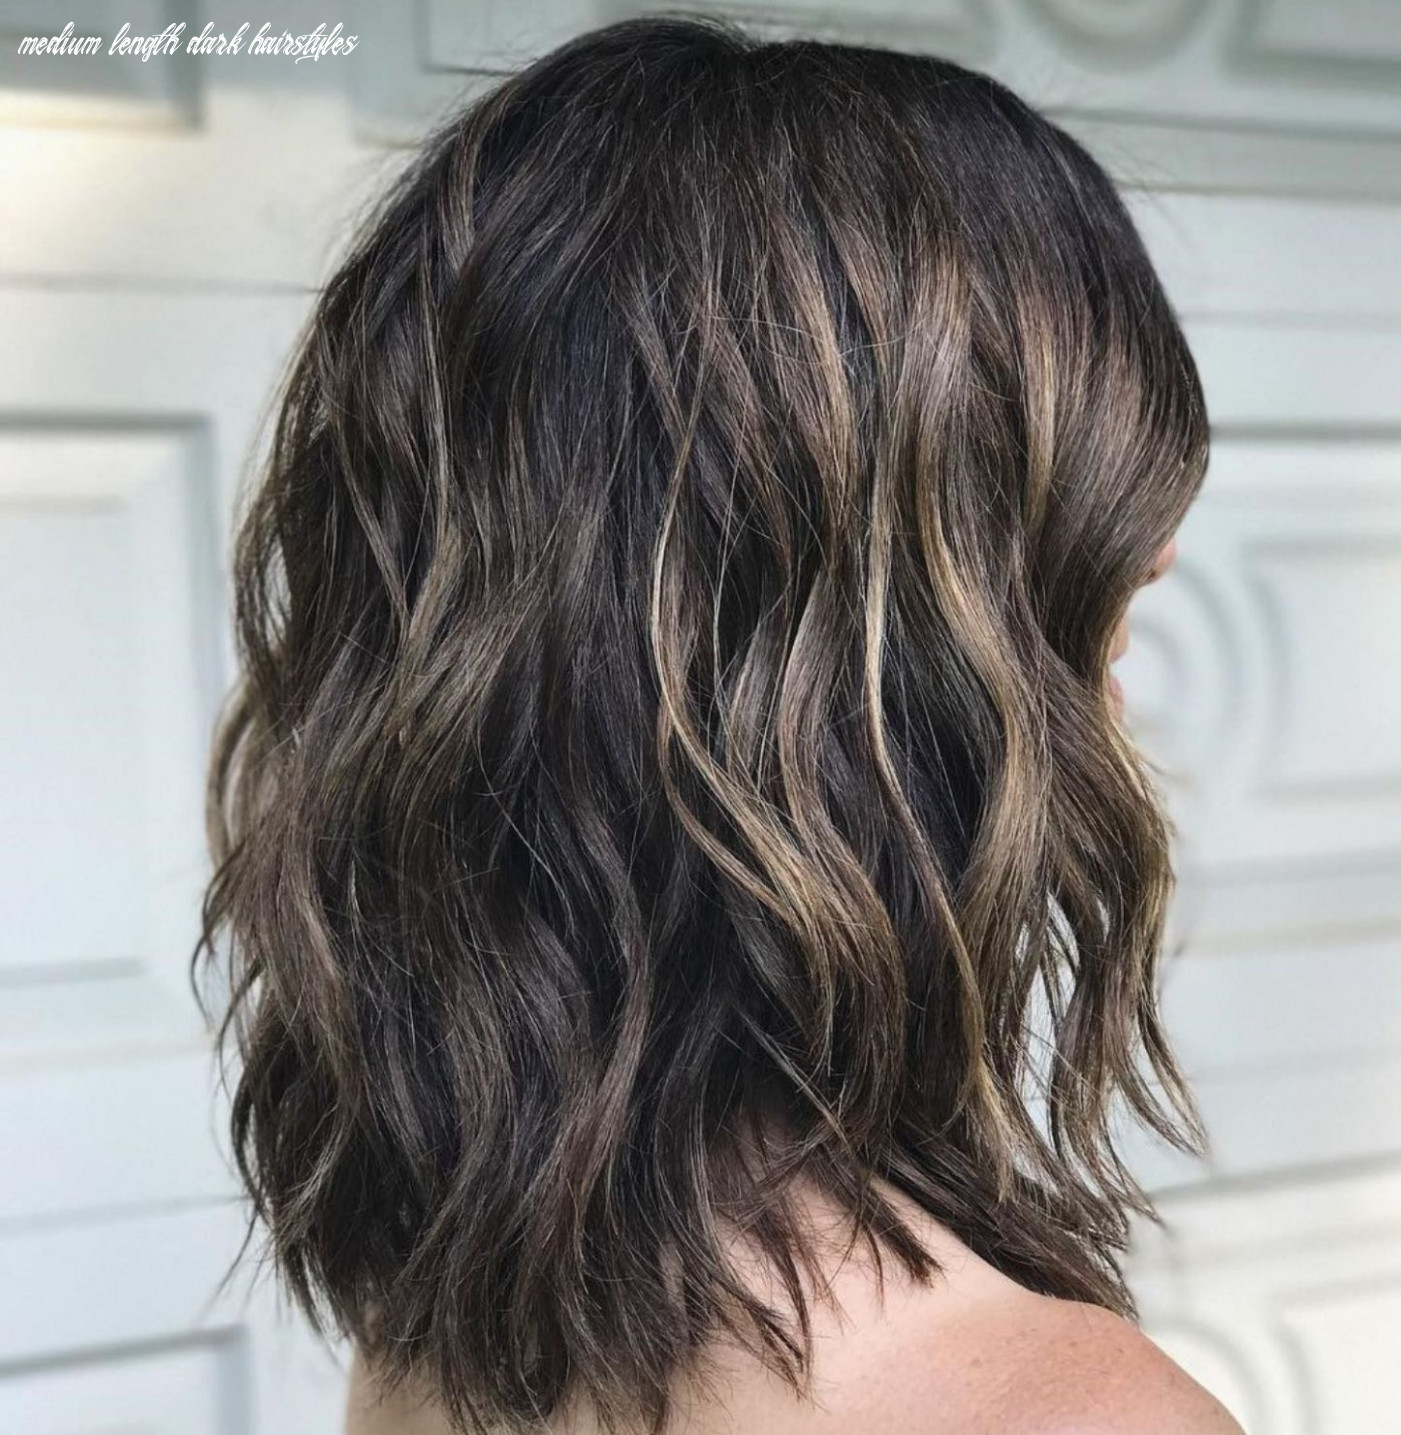 8 most beneficial haircuts for thick hair of any length